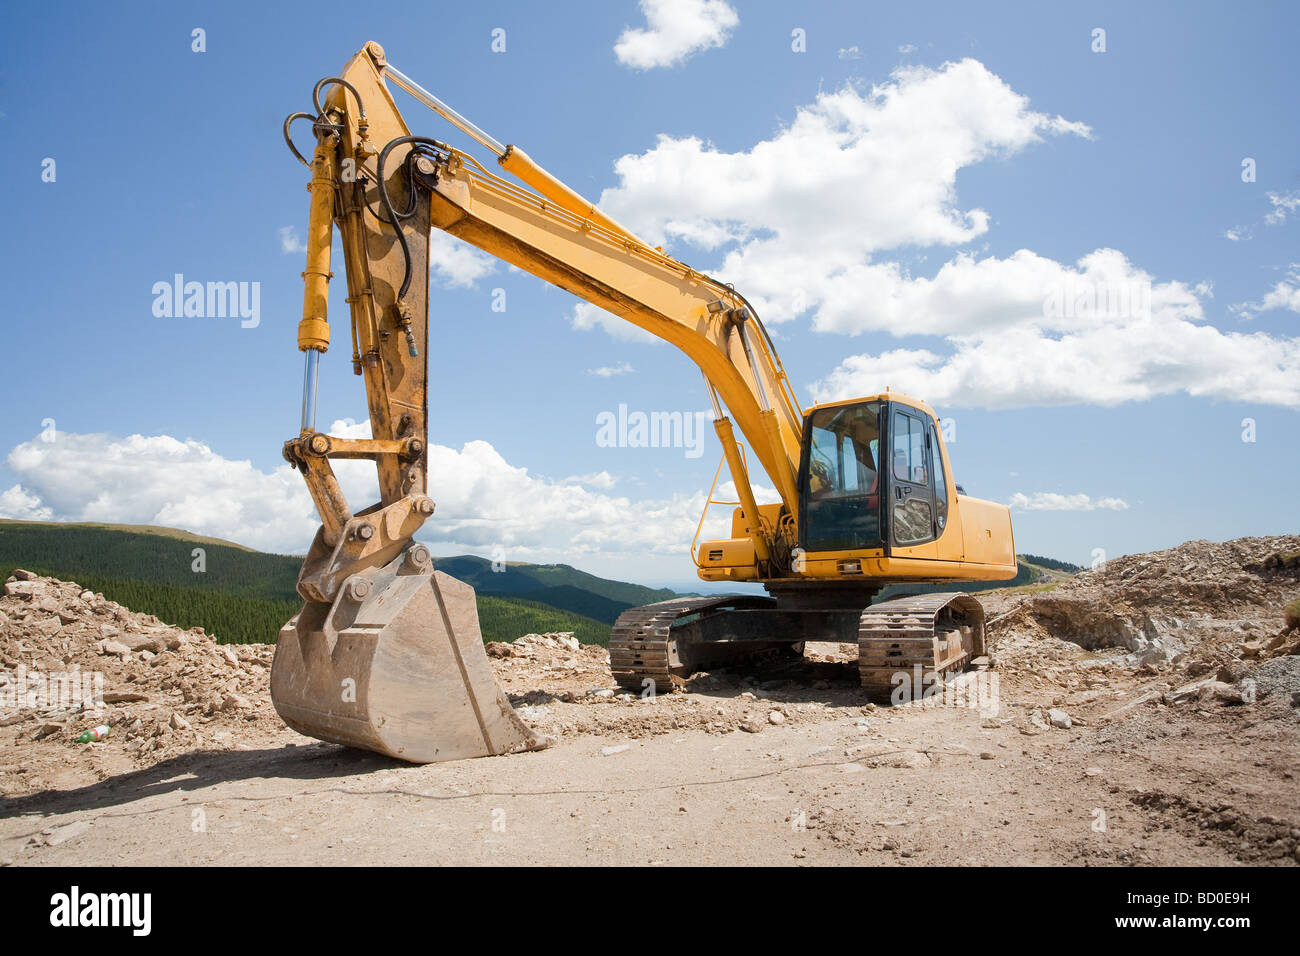 Excavator or digger construction machinery at a construction site outdoors - Stock Image